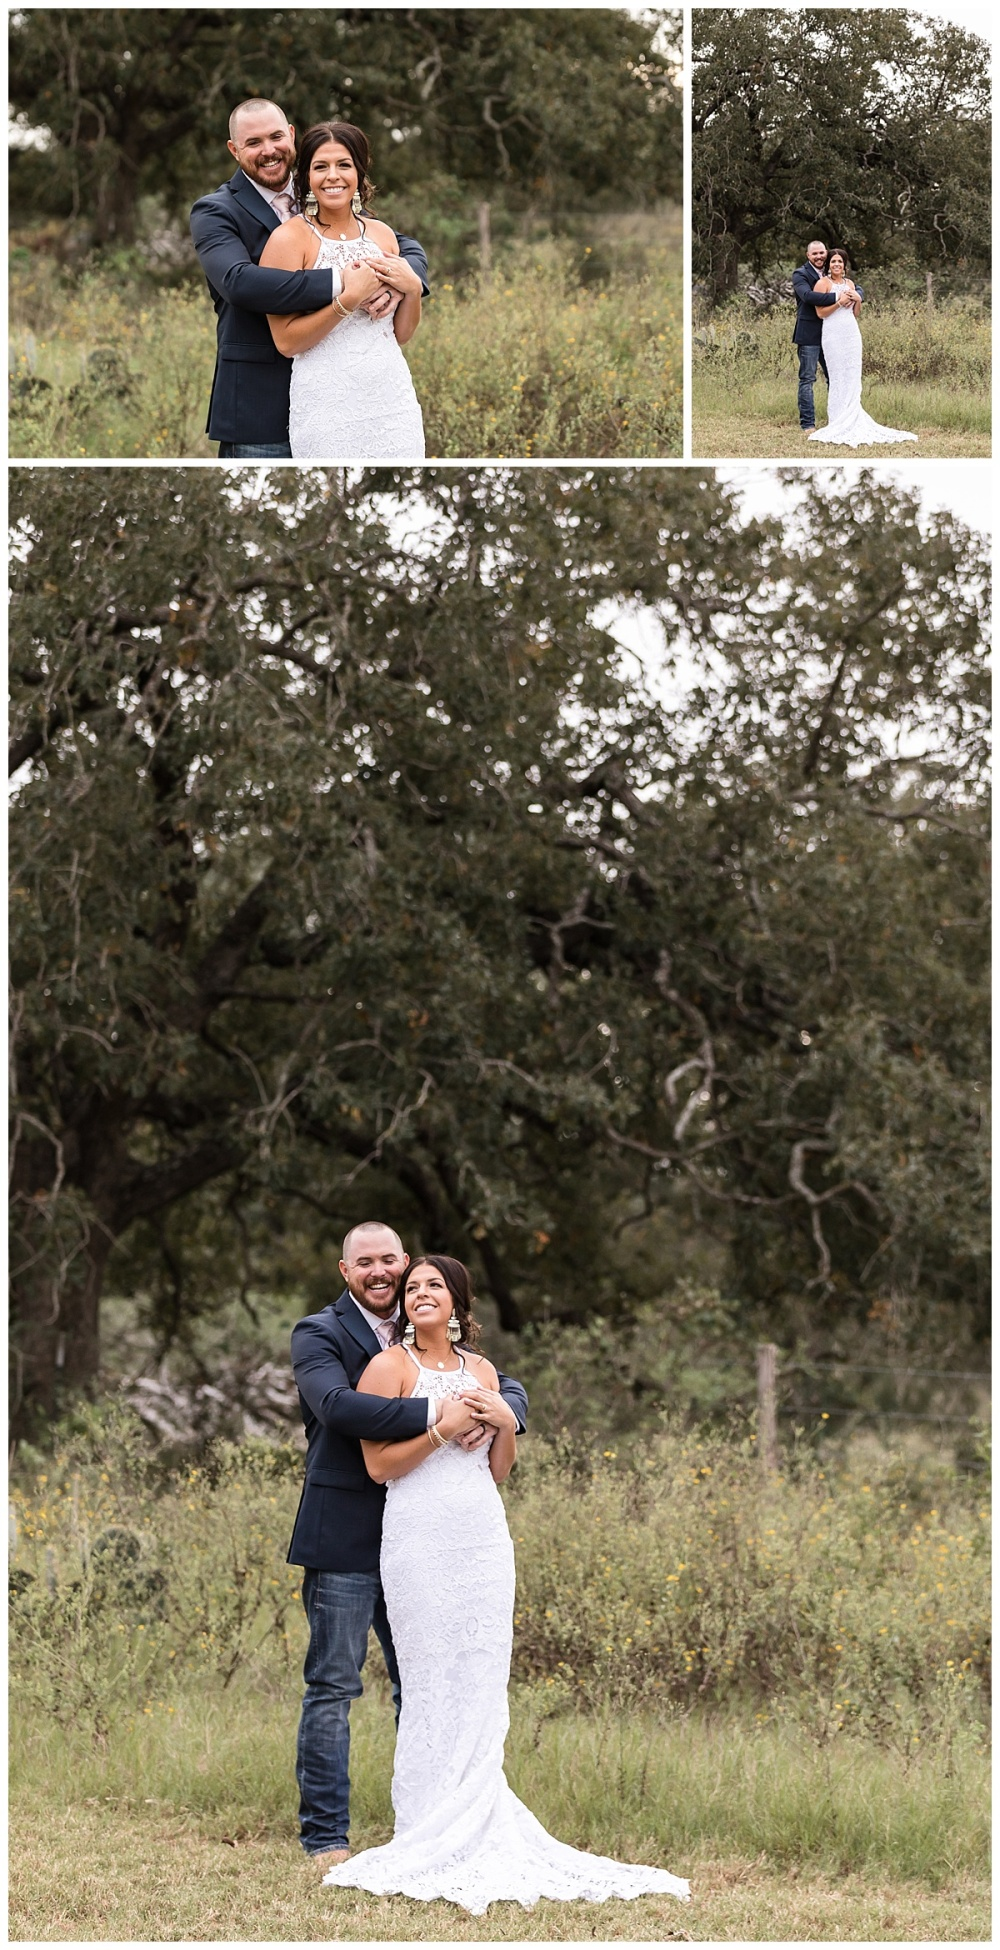 South-Texas-Wedding-Photographer-Rose-Gold-and-Navy-Theme-LaVernia-Bride-Groom-Carly-Barton-Photography_0069